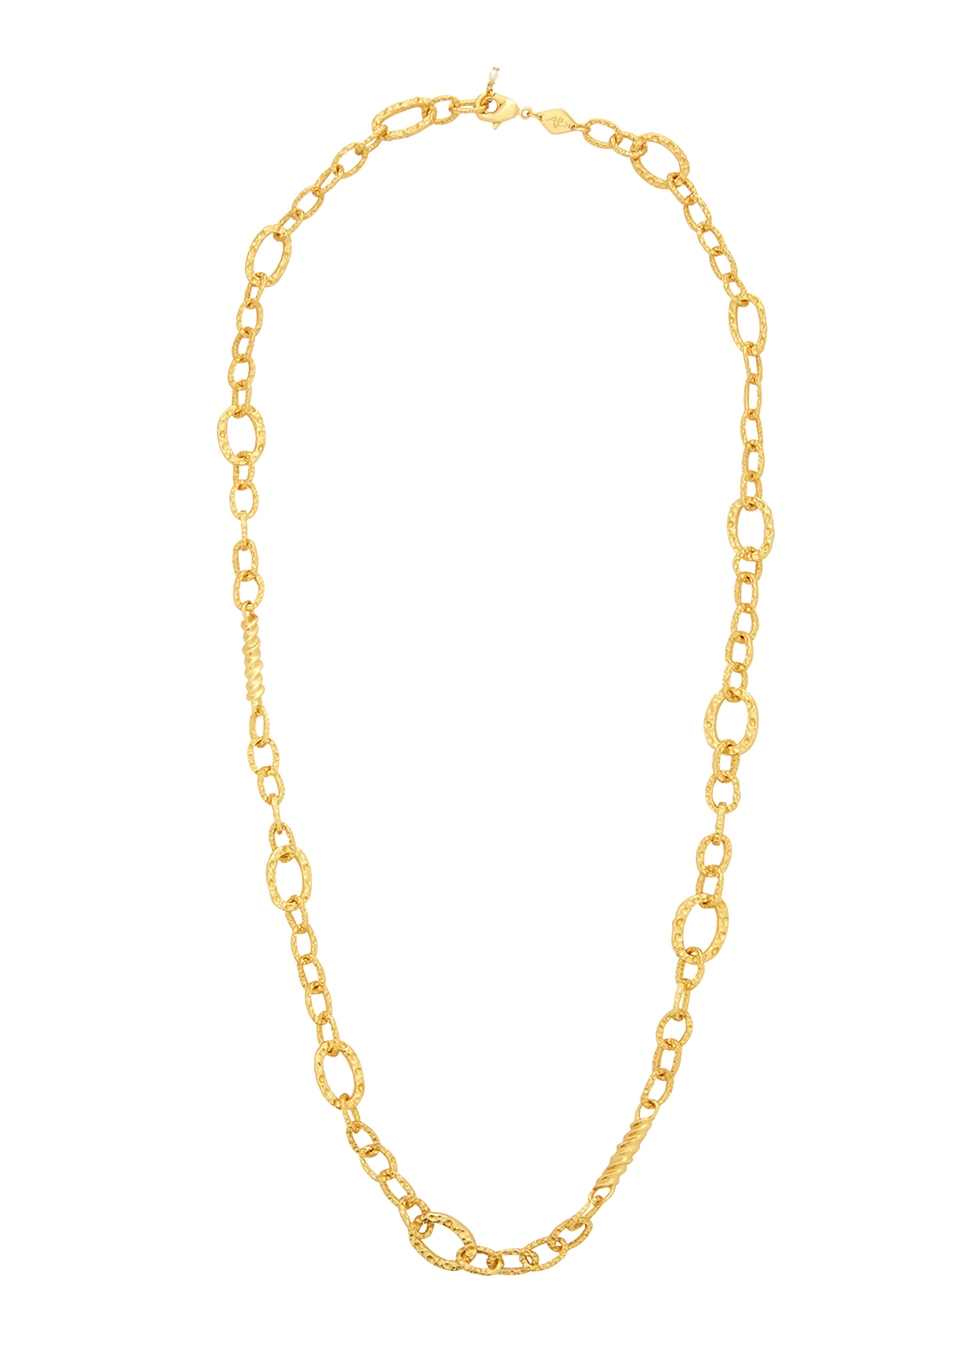 Unchain Me 18kt gold-plated necklace